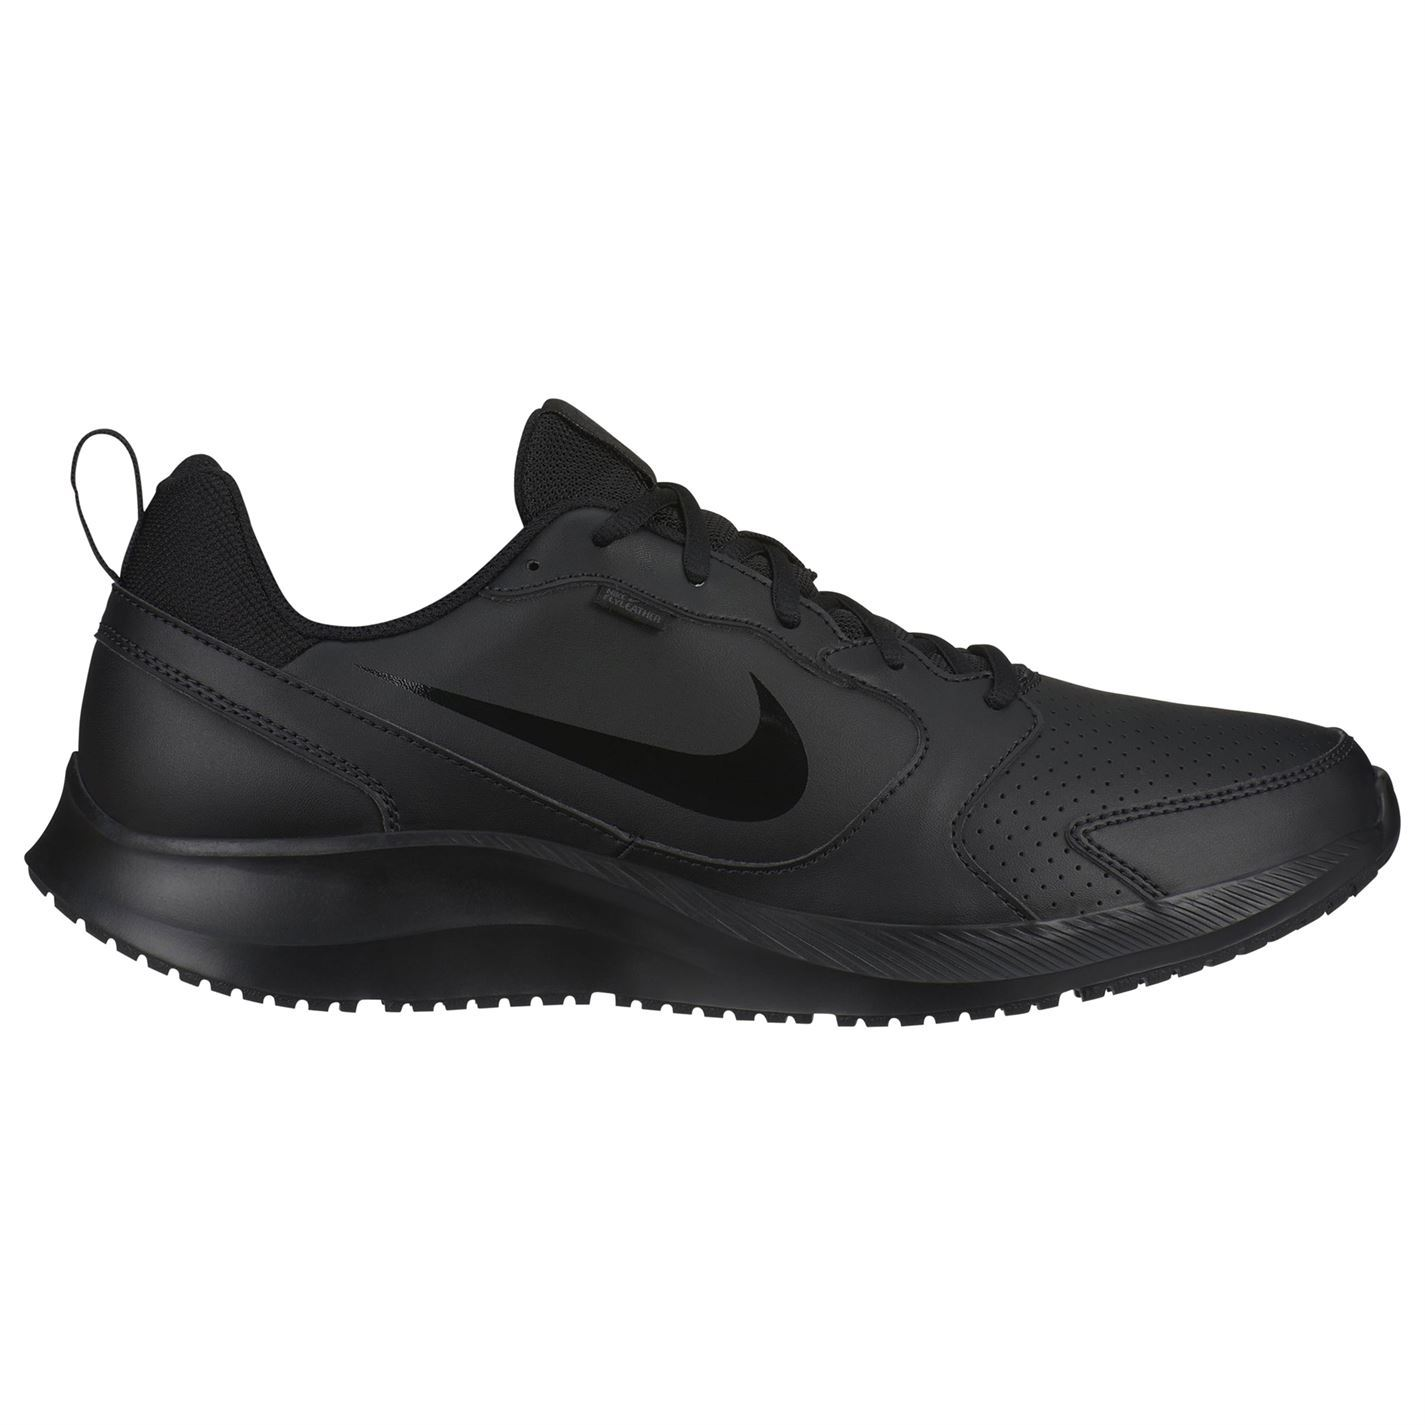 Shoes Trainers Todos Mens about Footwear Nike Details Sneakers Running rexQdoEBCW